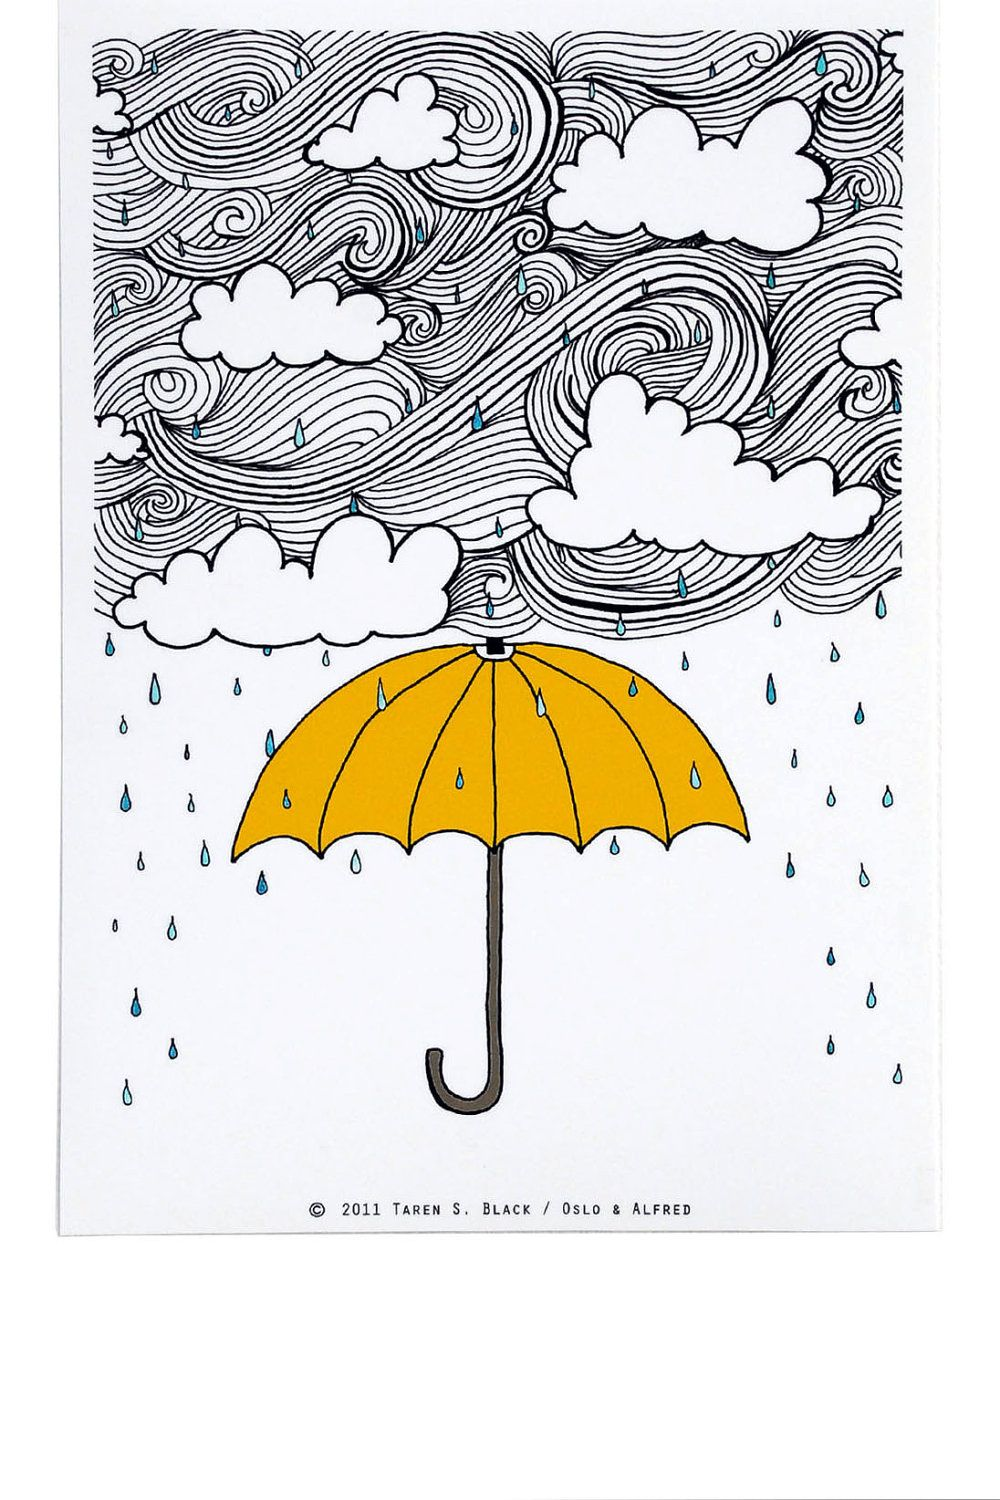 5a5608a36 The Yellow Umbrella - Illustration by: Taren S. Black. $15.00, via Etsy.